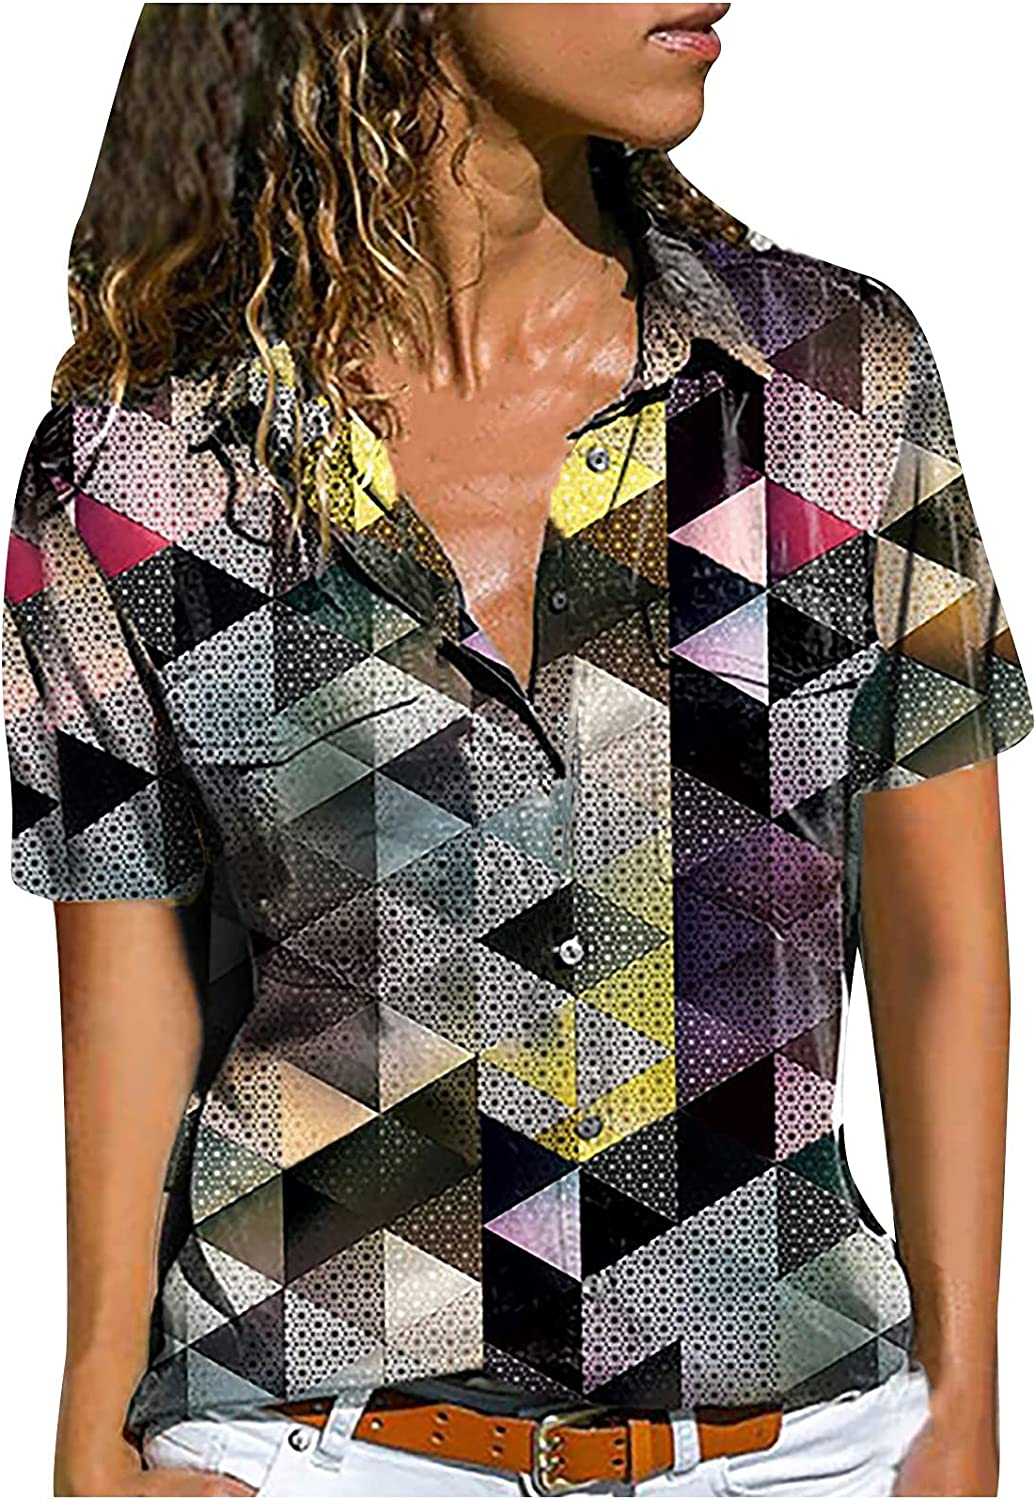 Women's T-Shirts Button Down Shirts Color Block Patchwork Plaid Short Sleeve V Neck Tops Summer Blouses for Women